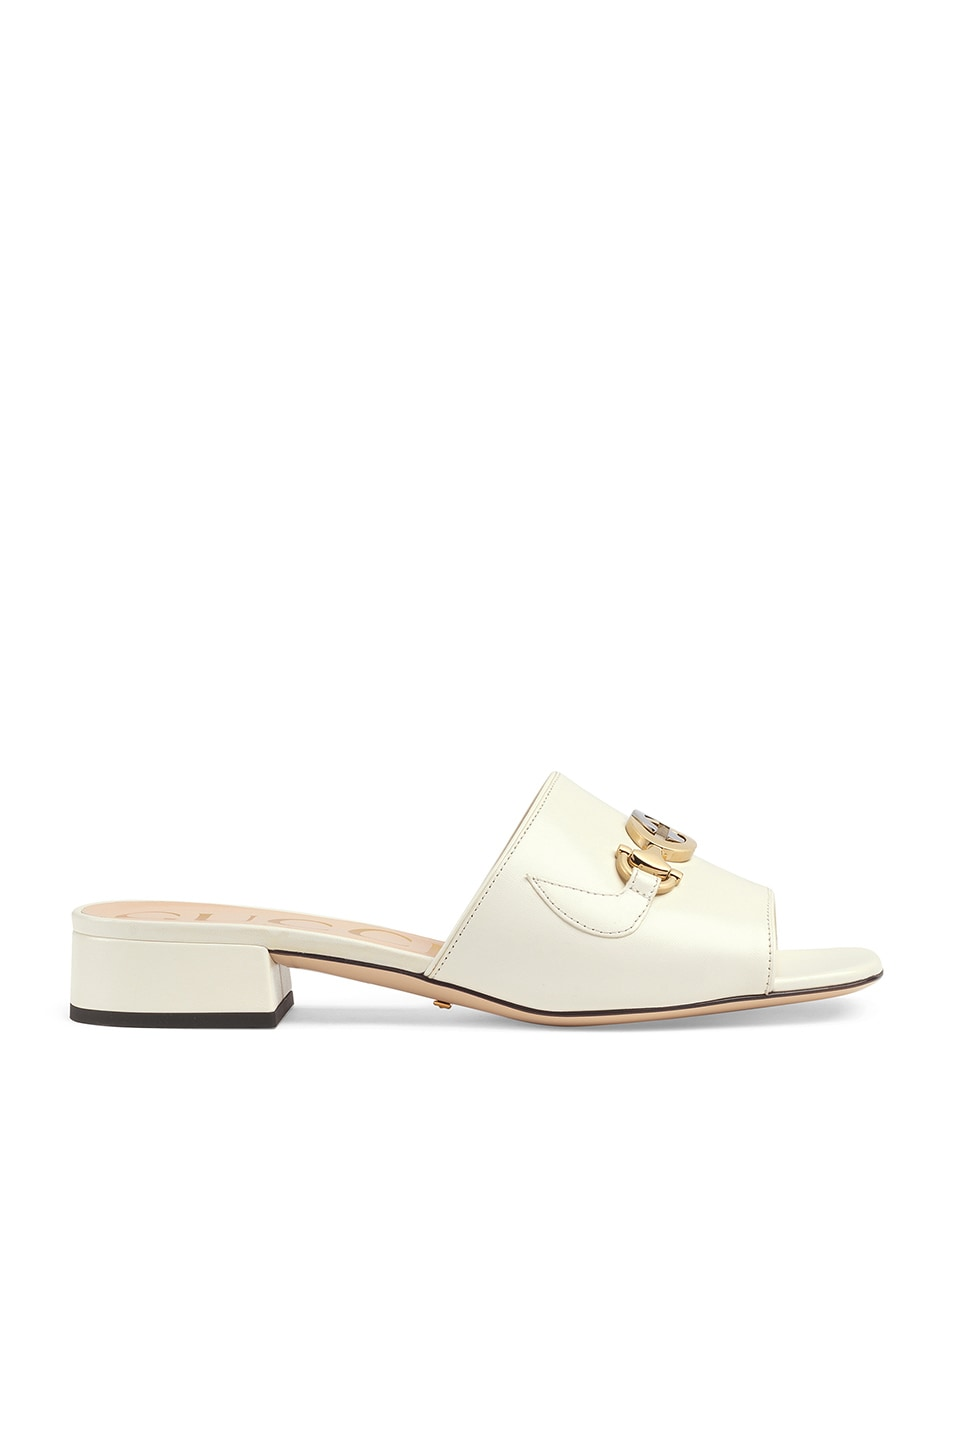 Image 1 of Gucci Leather Sandals in Dusty White